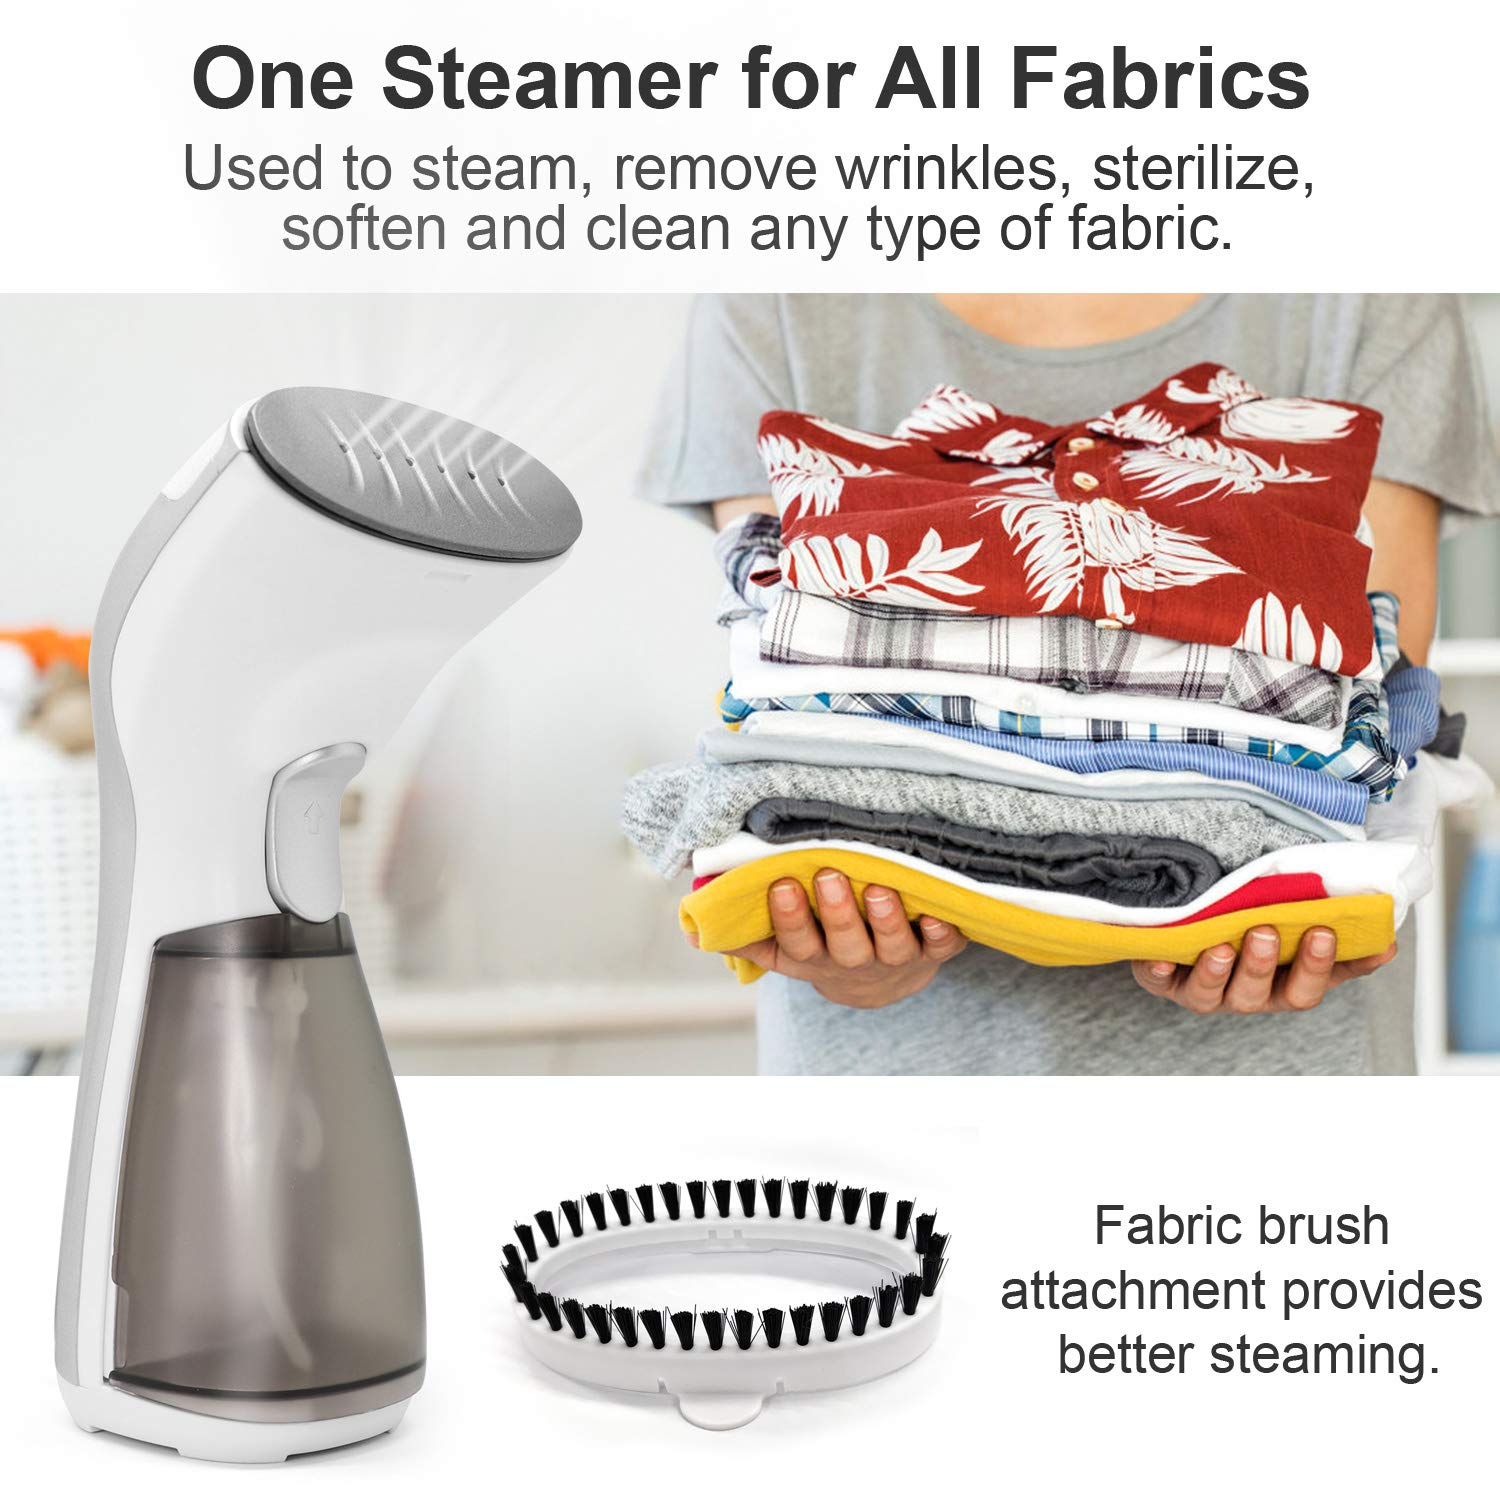 Compact Iron Steamer for Clothing Powerful Iron Wrinkles Remover for Travel//Home Any Fabrics Portable Travel Garment Steamer Mini Handheld Steamer for Clothes Garment IDEER,Silver 06032